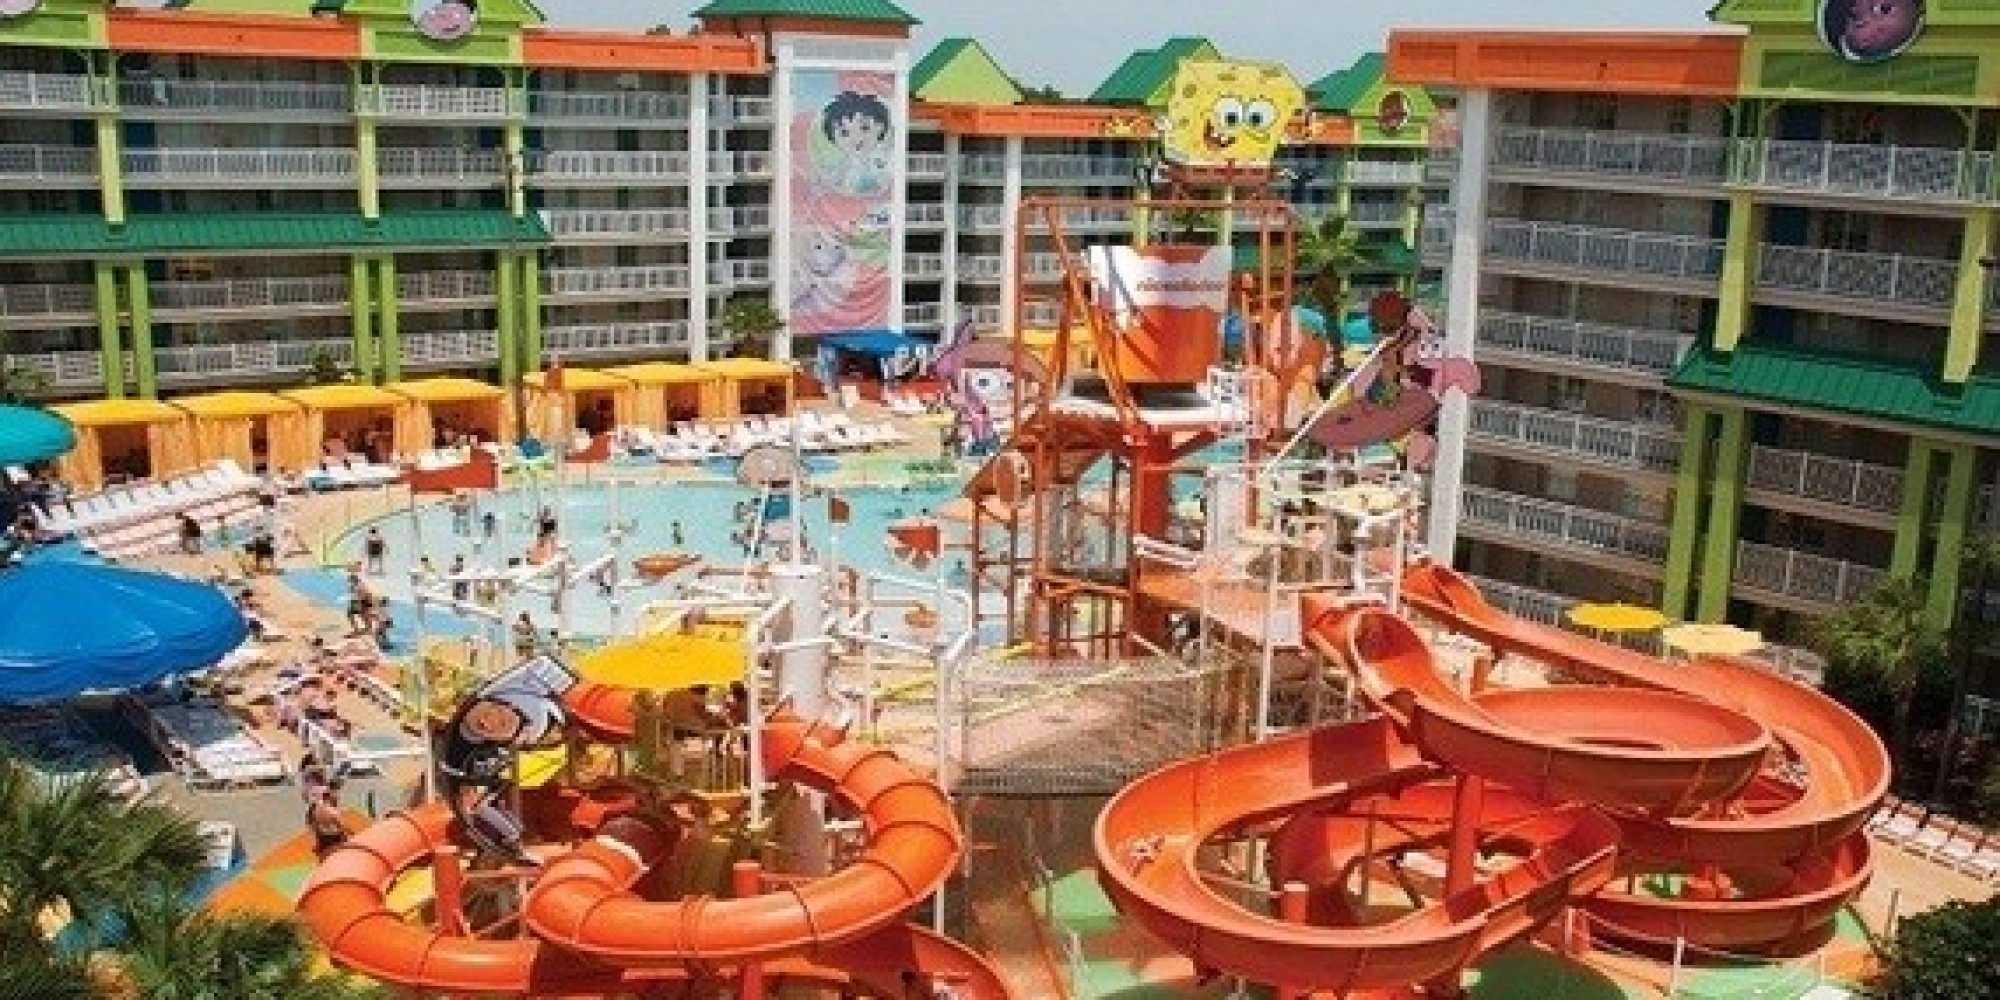 orlando's most amazing hotel pools | huffpost